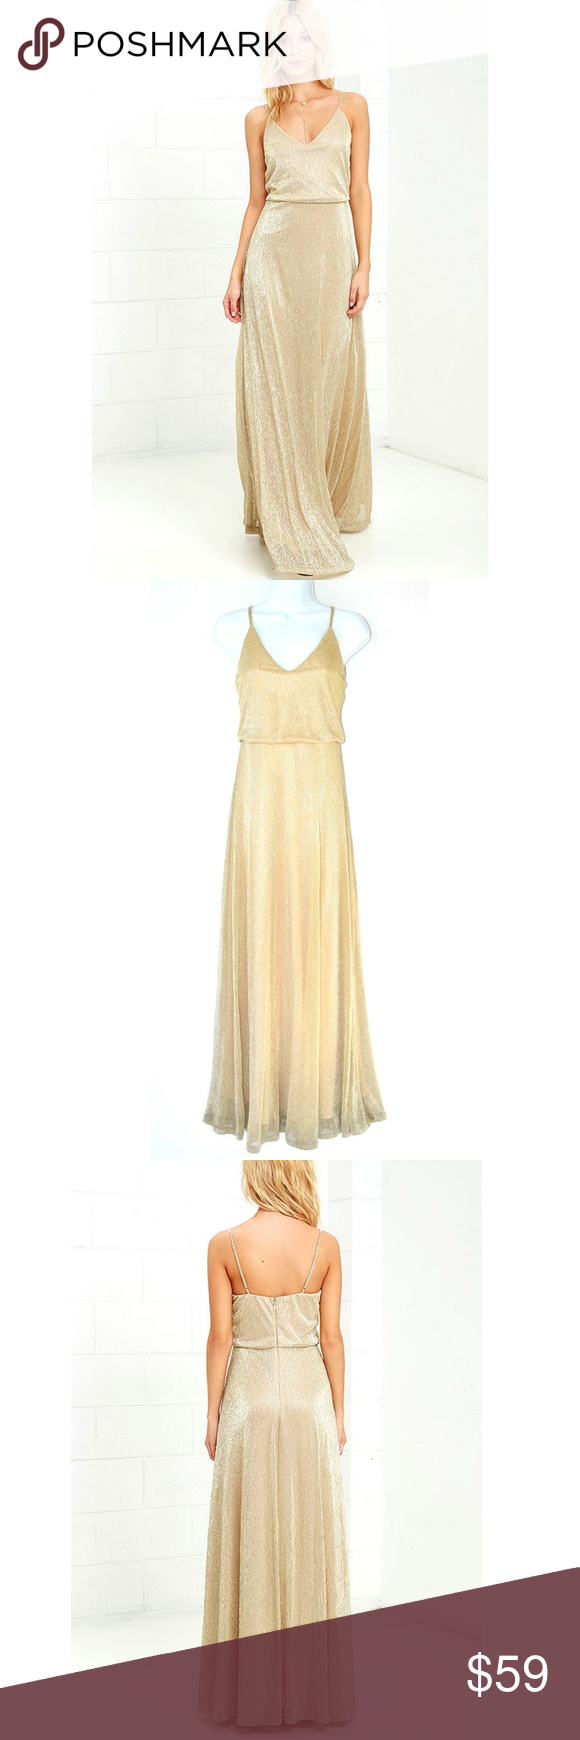 c514754adf LULUS Friend of the Glam Gold Maxi Dress All the glamour seekers know that  an amazing